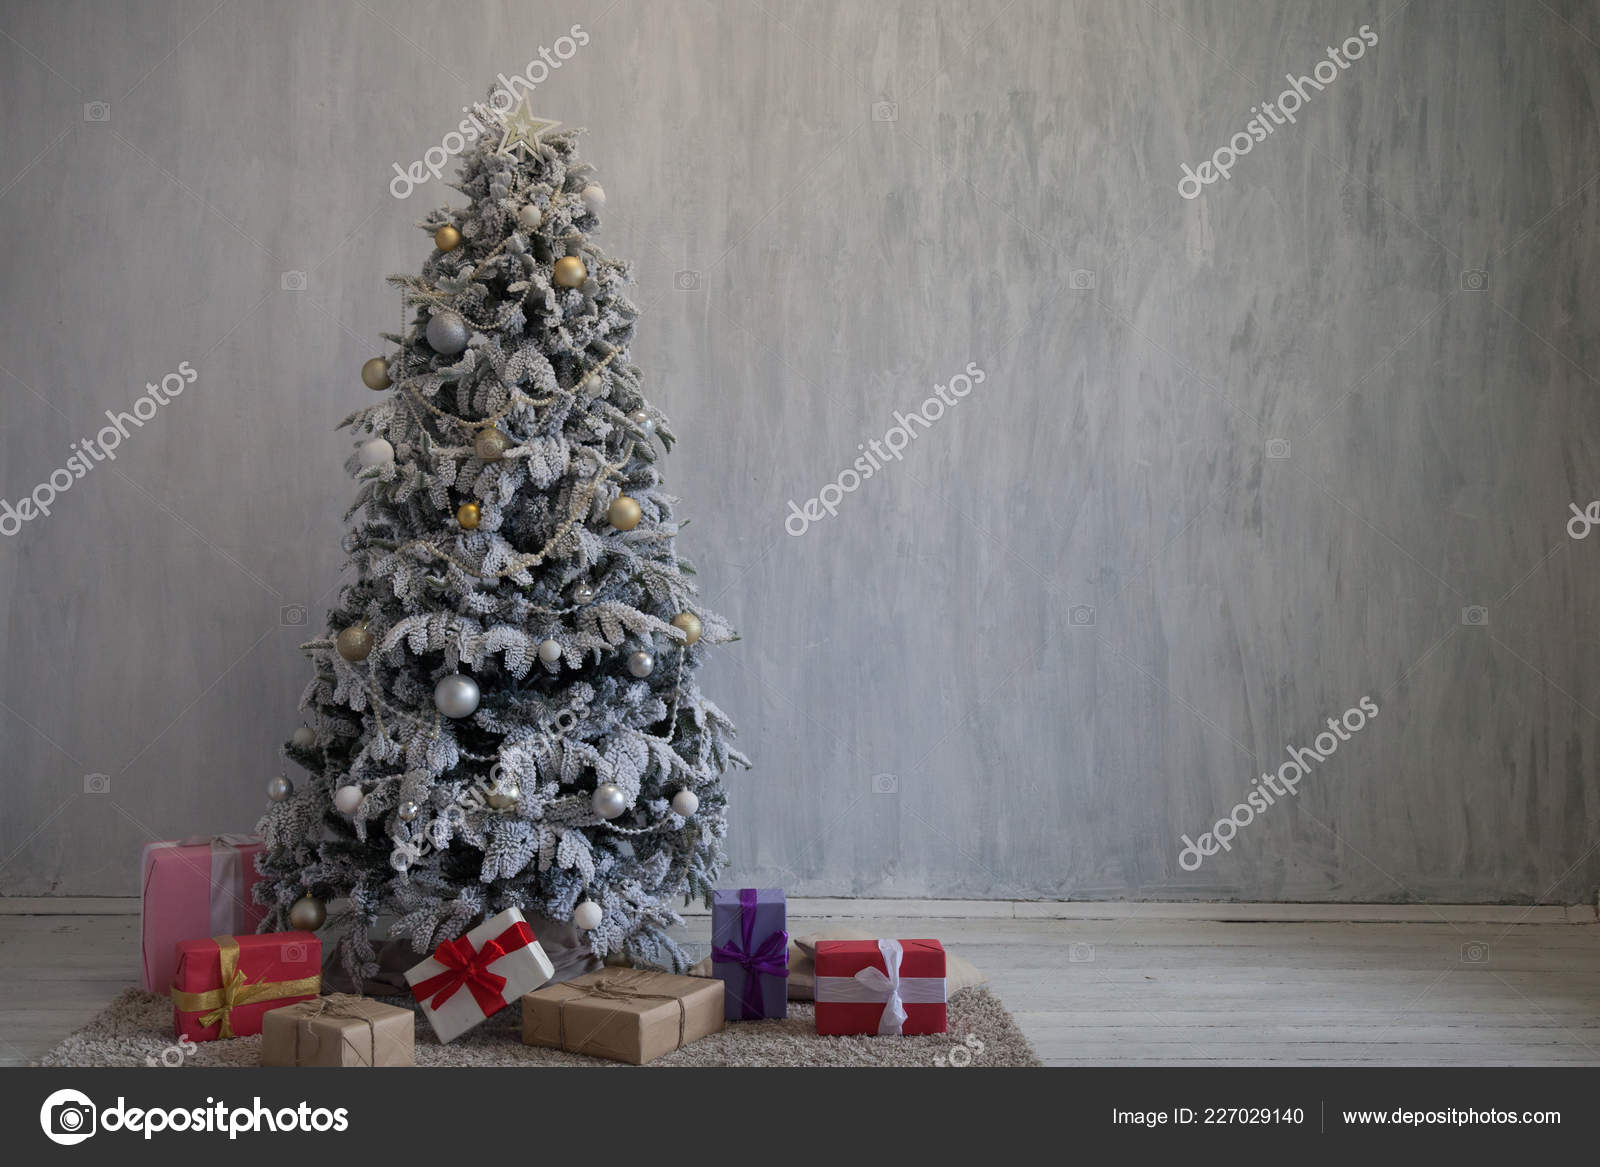 christmas background christmas tree new year gifts decor decoration holiday winter stock photo